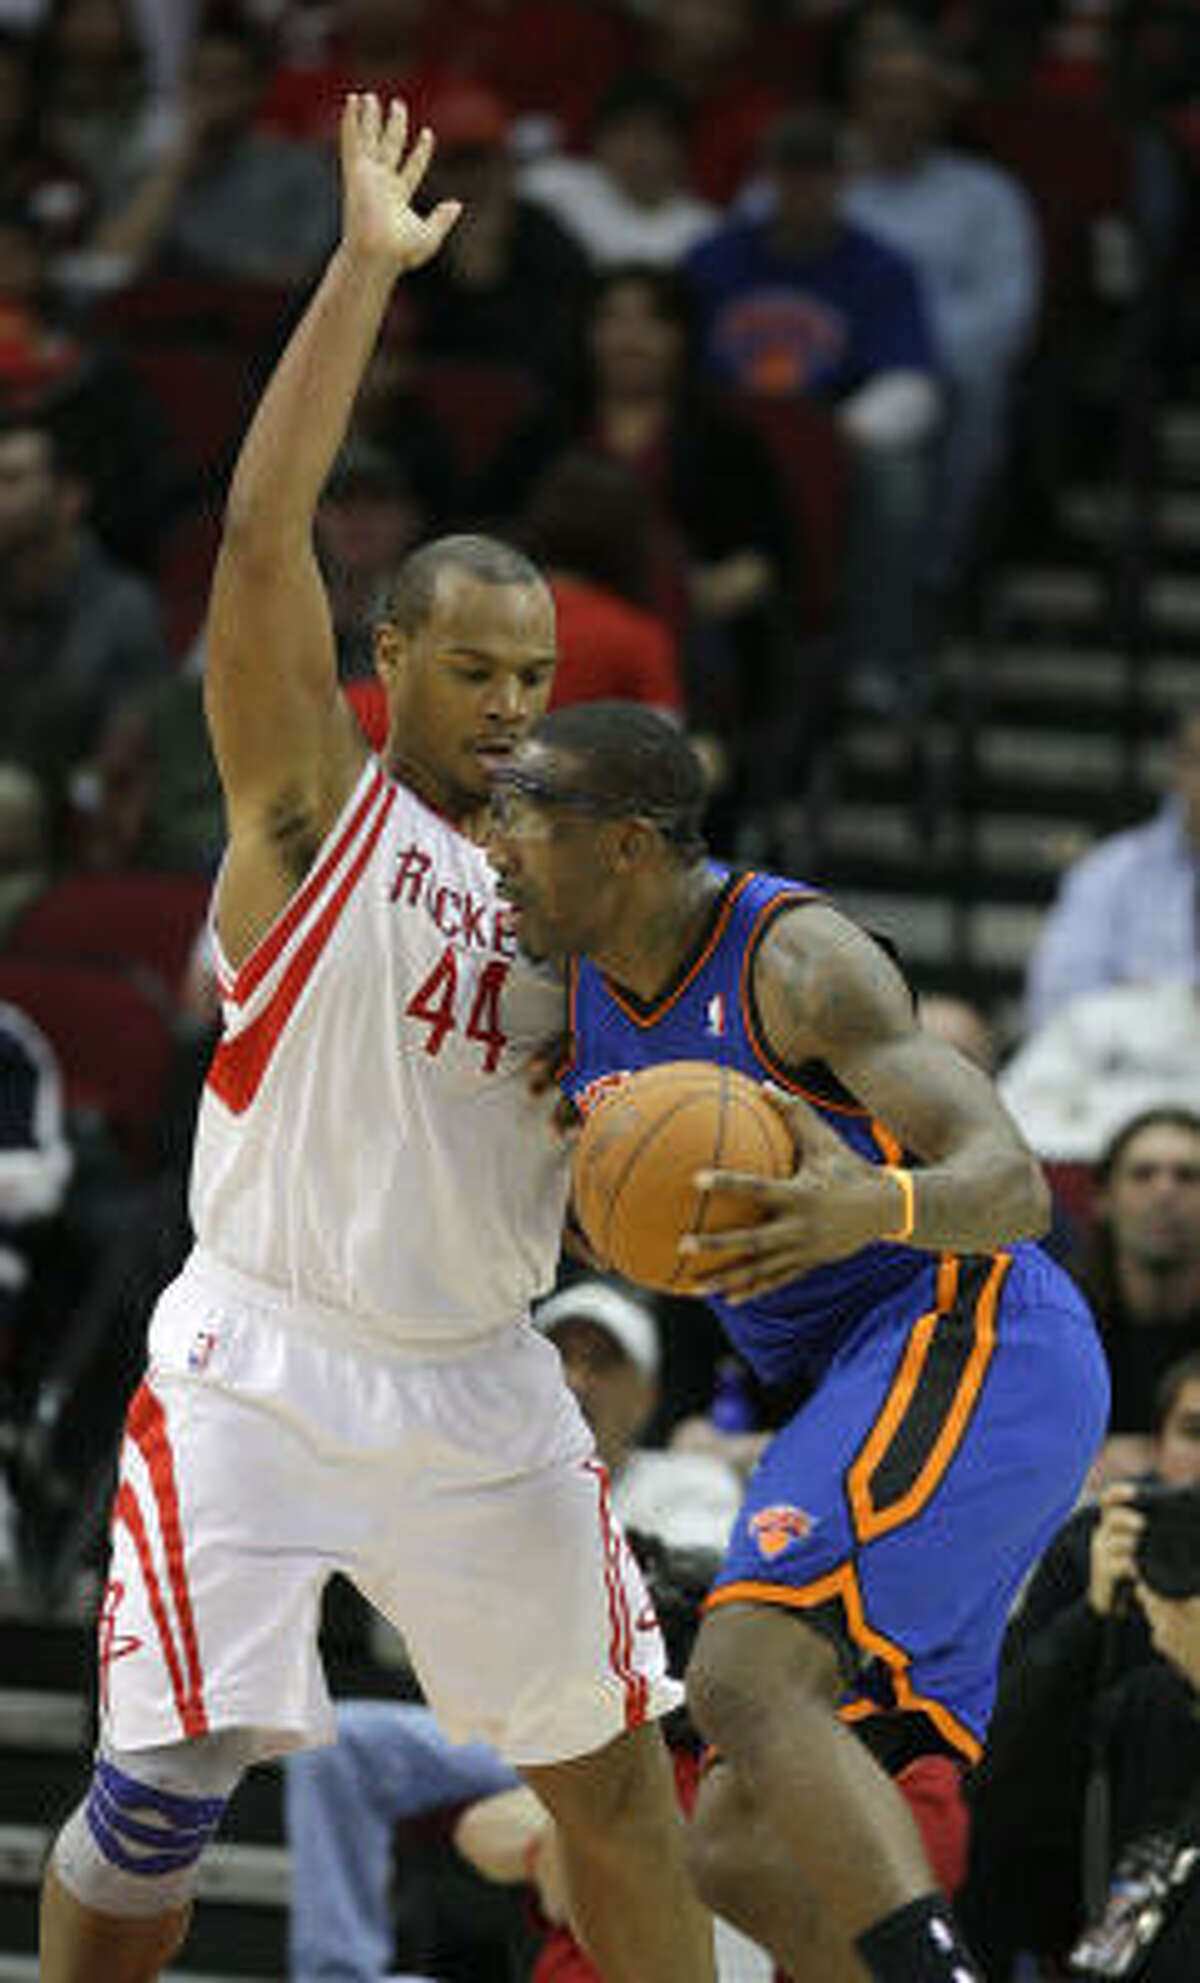 As part of a nightmarish stretch for a defensive player, the Rockets' Chuck Hayes took on Amare Stoudemire on Wednesday night. Stoudemire scored 25 points, but the Rockets were able to keep the other Knicks in check because Hayes didn't need double-team help on Stoudemire.